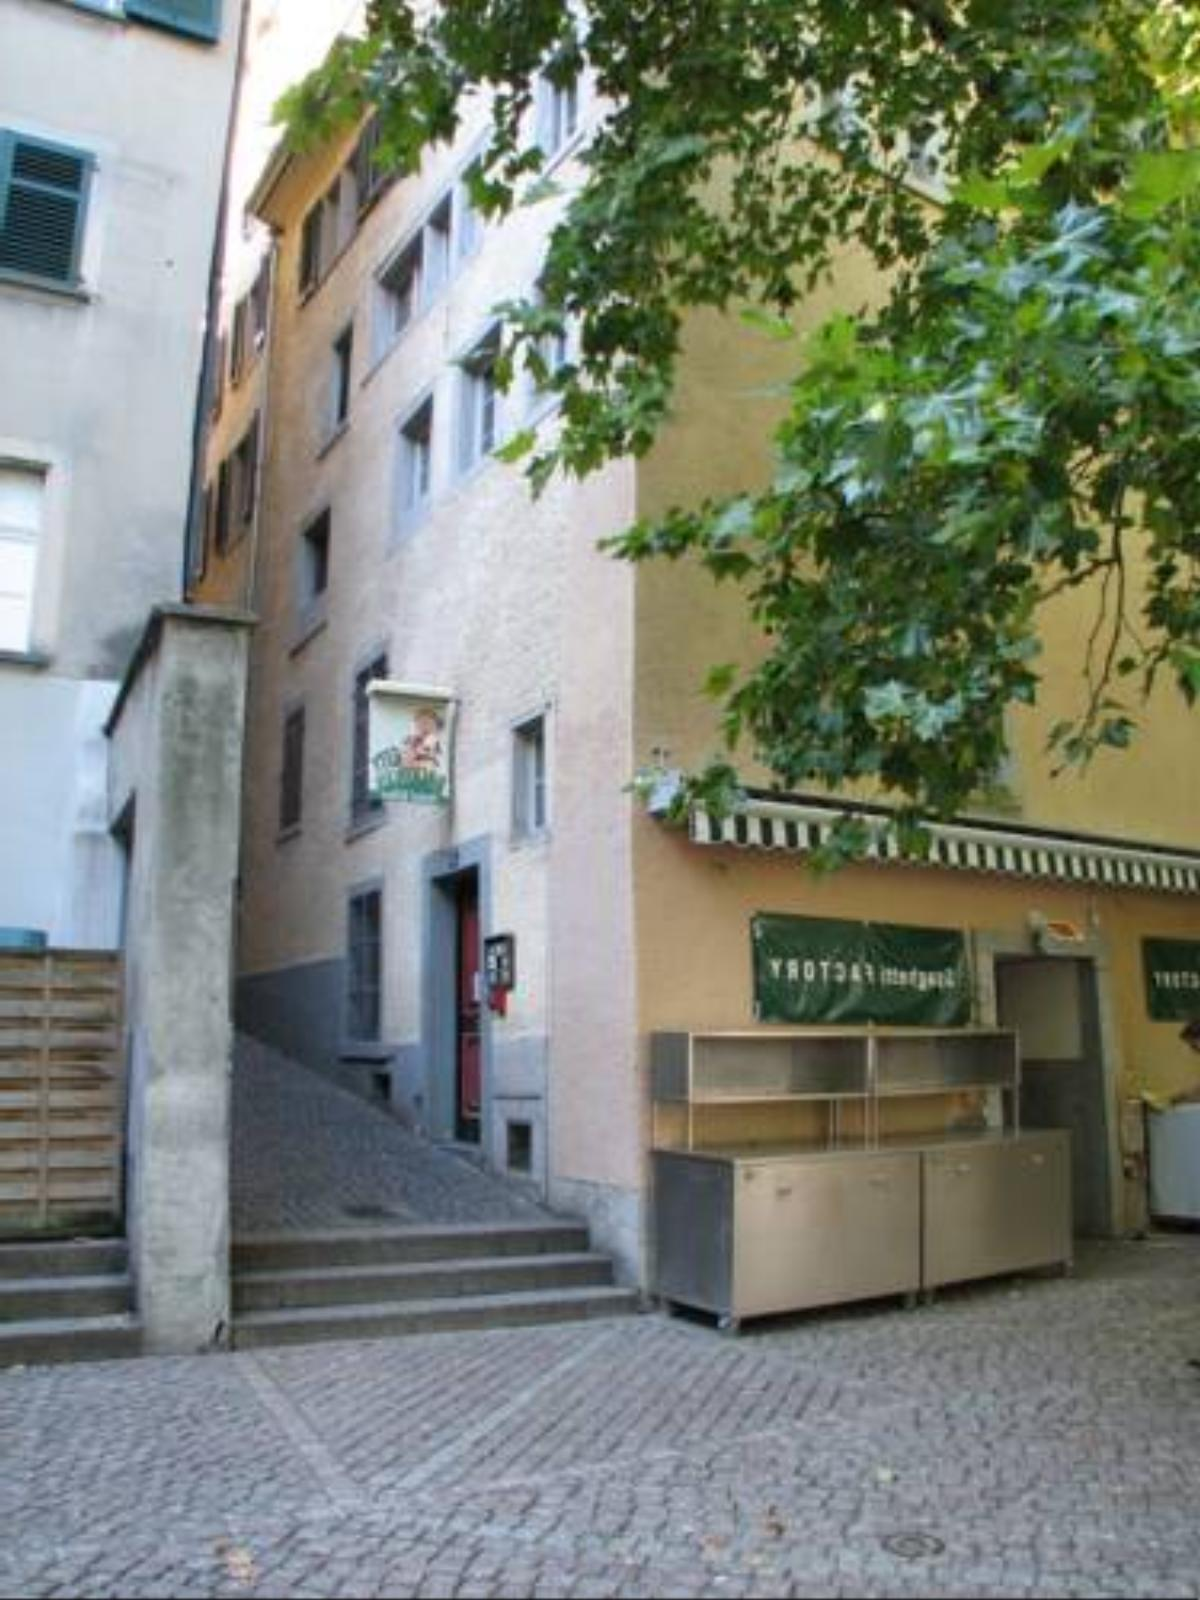 City Backpacker Biber Hotel Zürich Switzerland